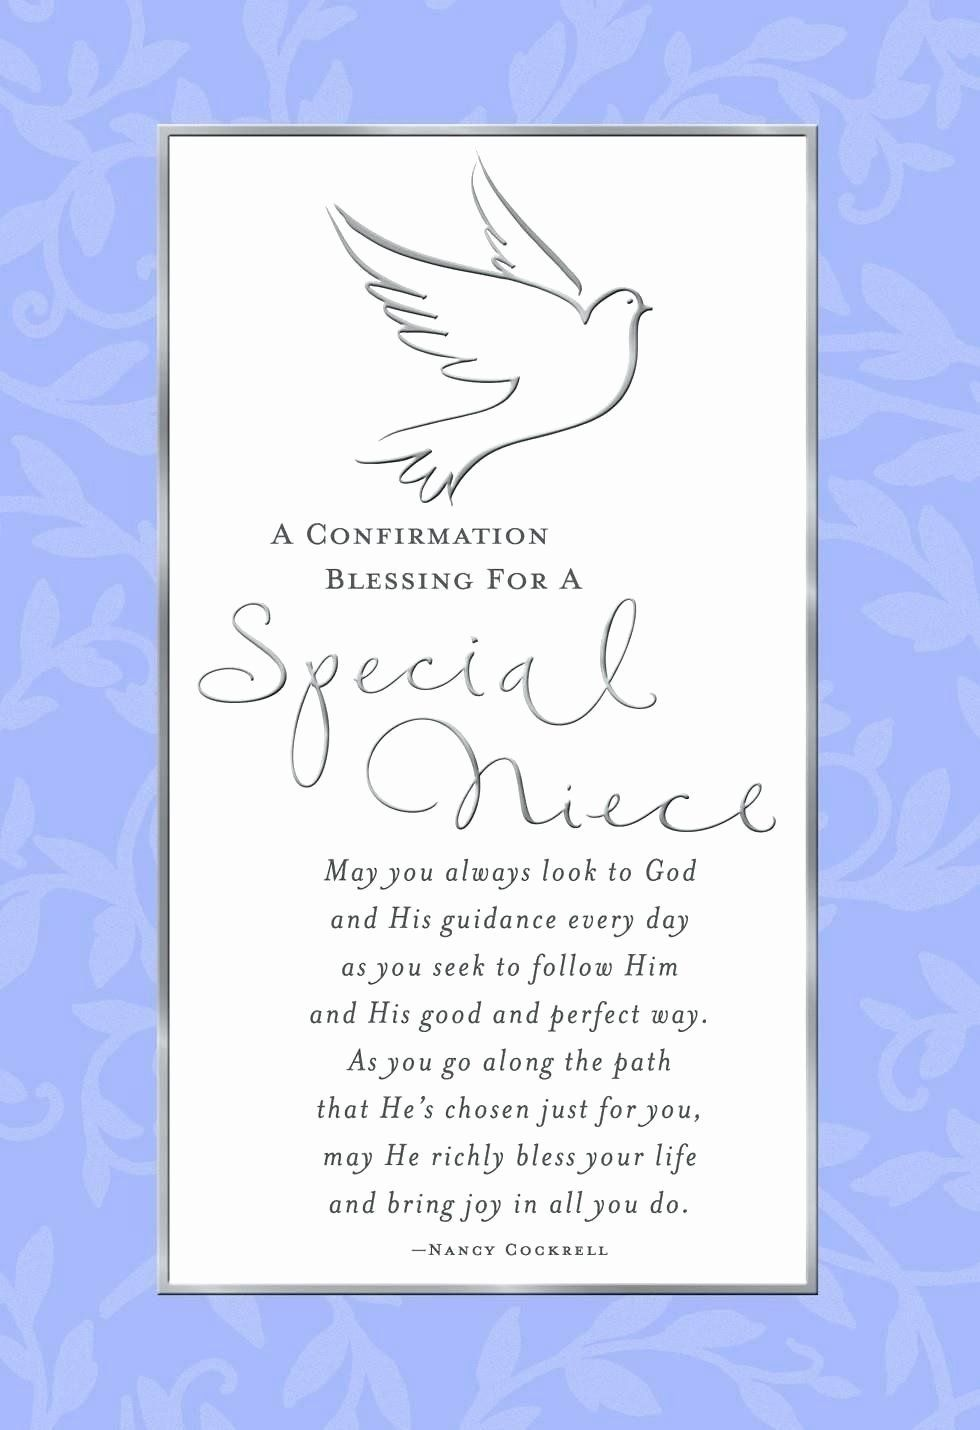 Christening Thank You Cards Inspirational Free Baptism Invitation Templates Unique Card Confirmation Cards Birthday Cards For Niece Christening Thank You Cards